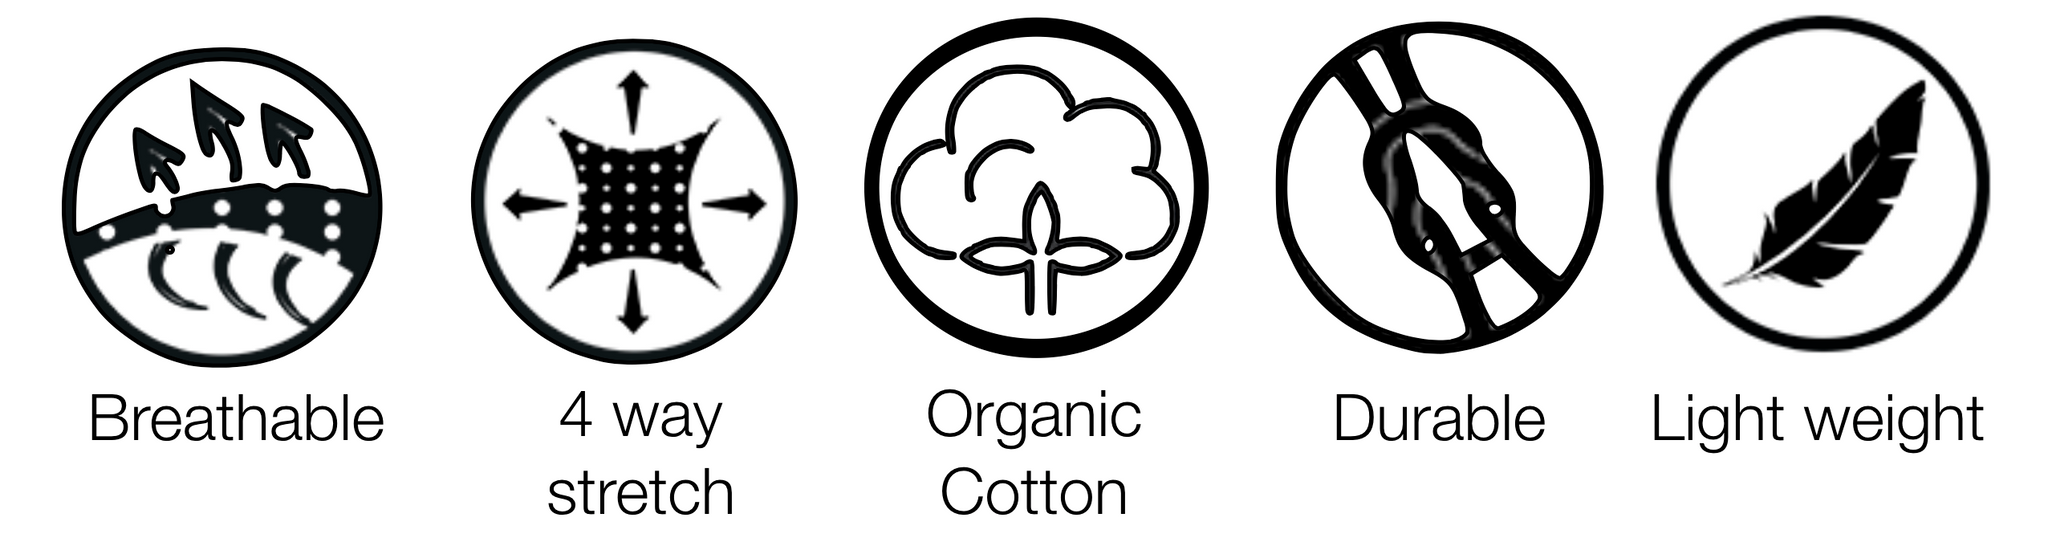 Nzo organic Cotton T fabric spec